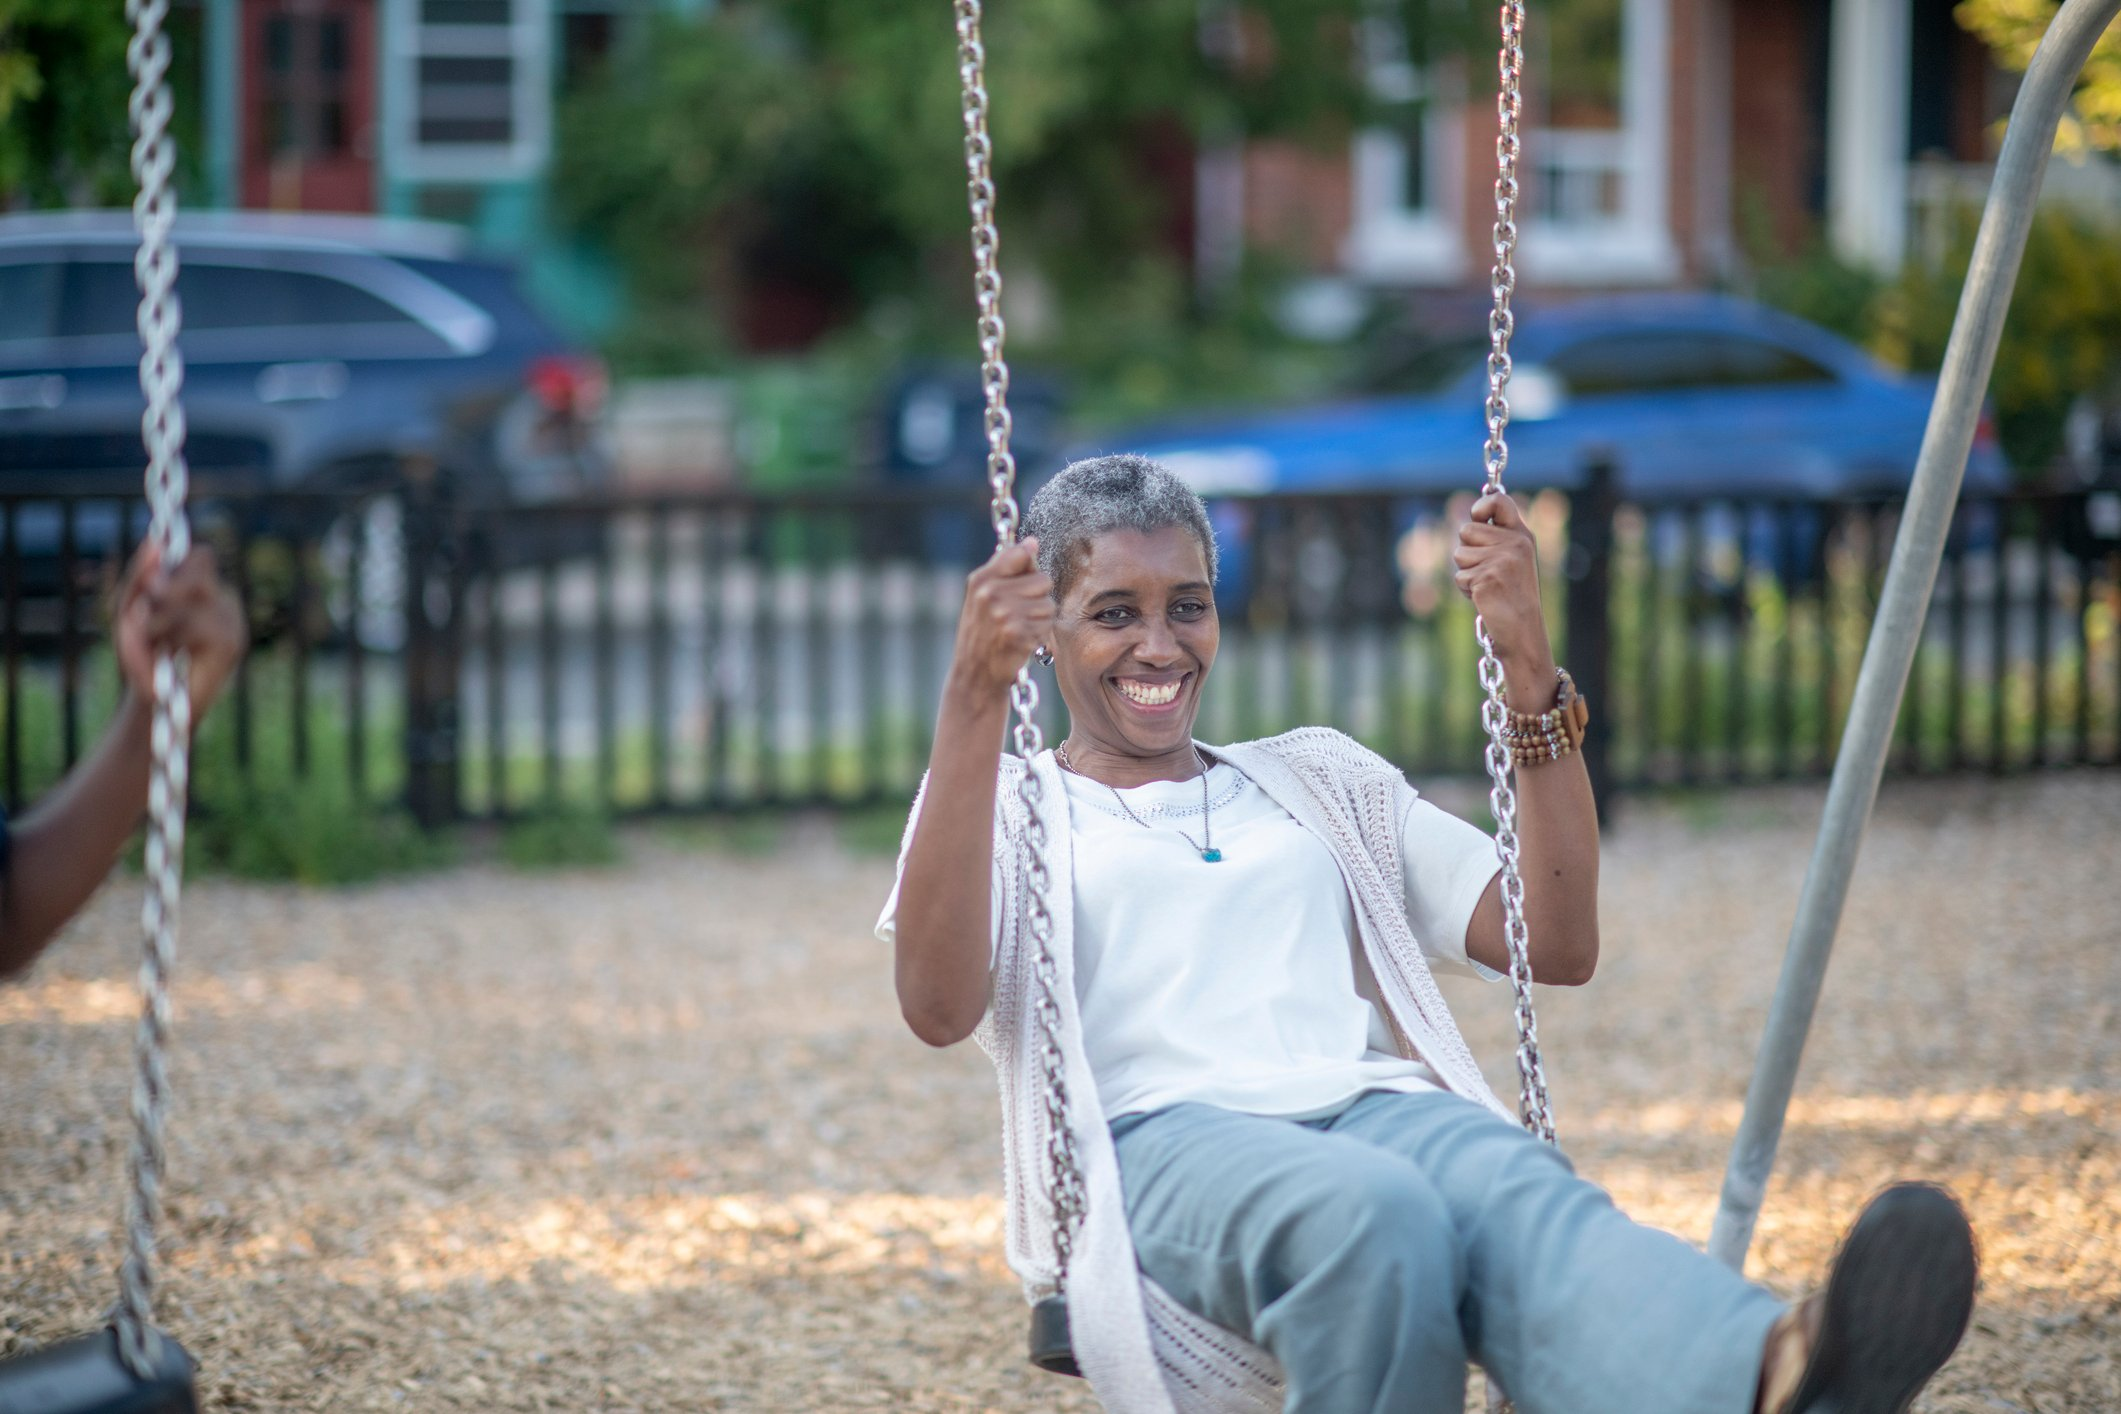 Senior African American woman on a swing.